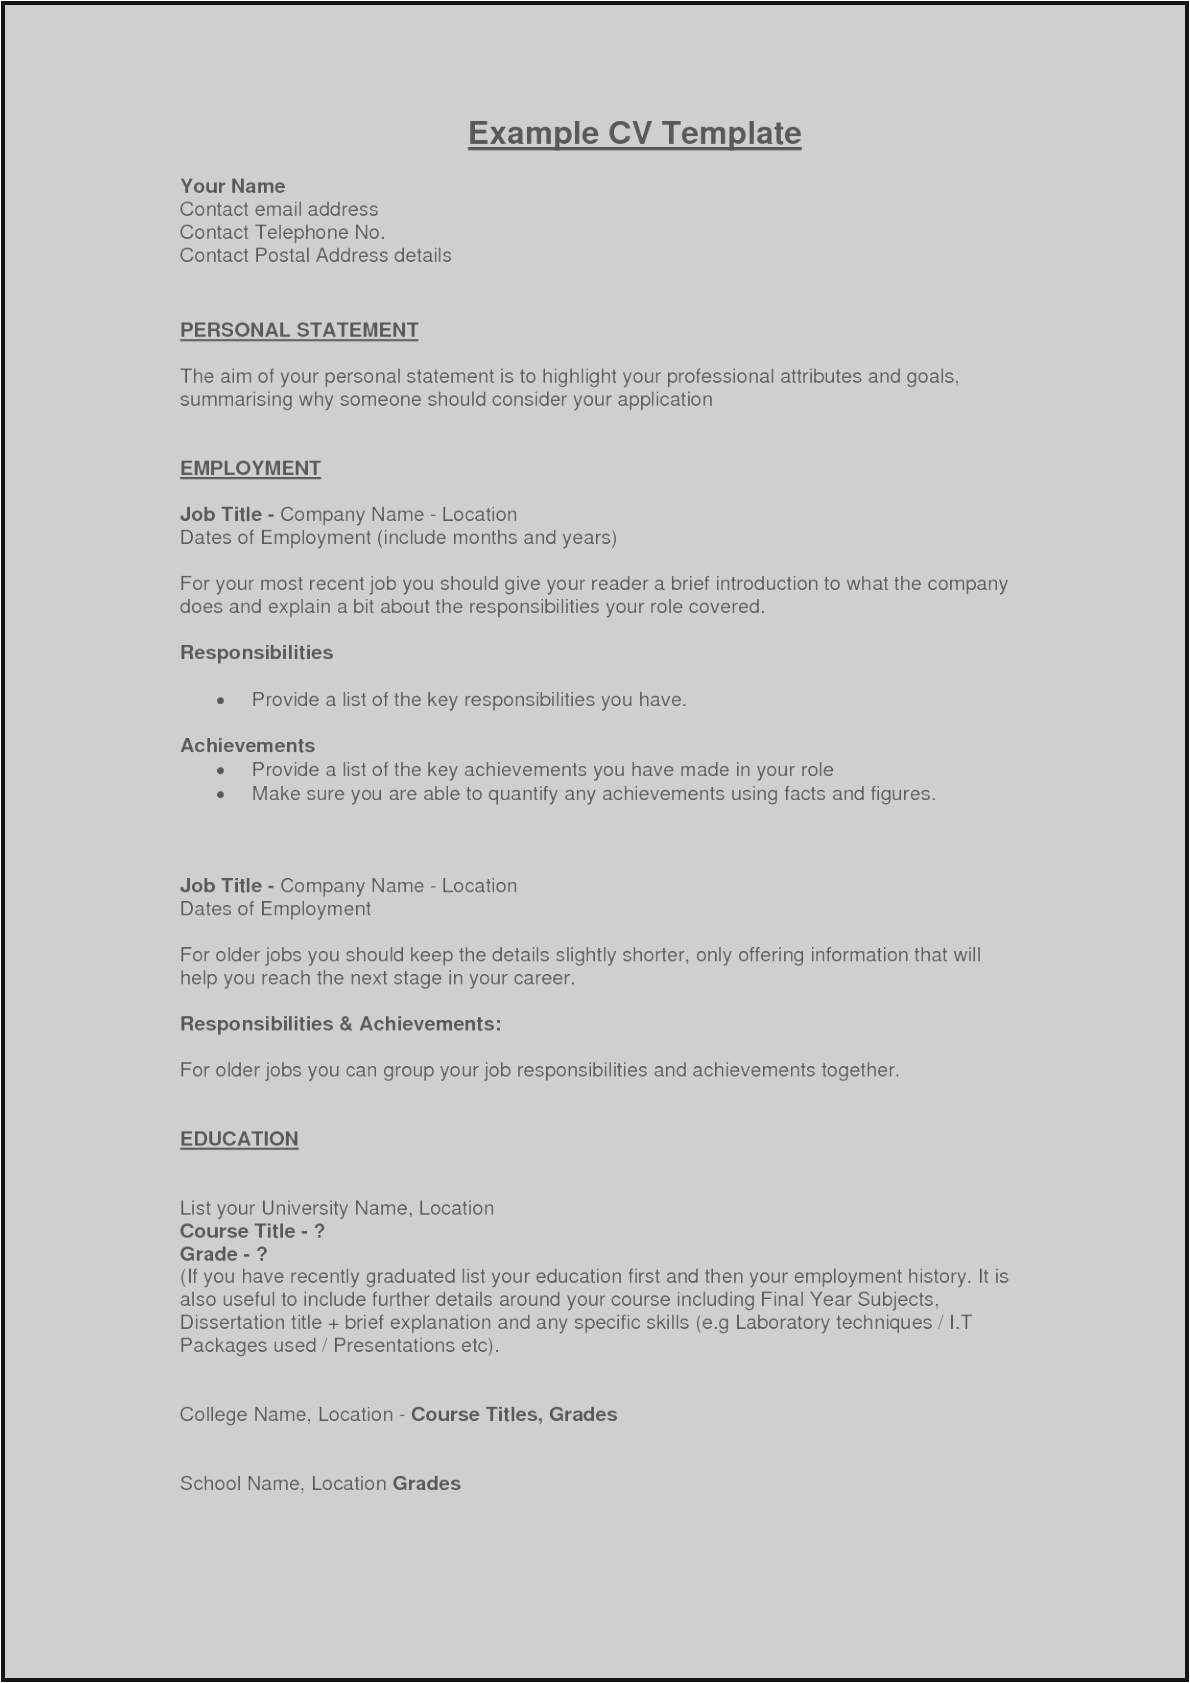 Making A Great Resume - How to Make A Resume Example Gallery Good Objective Statement for